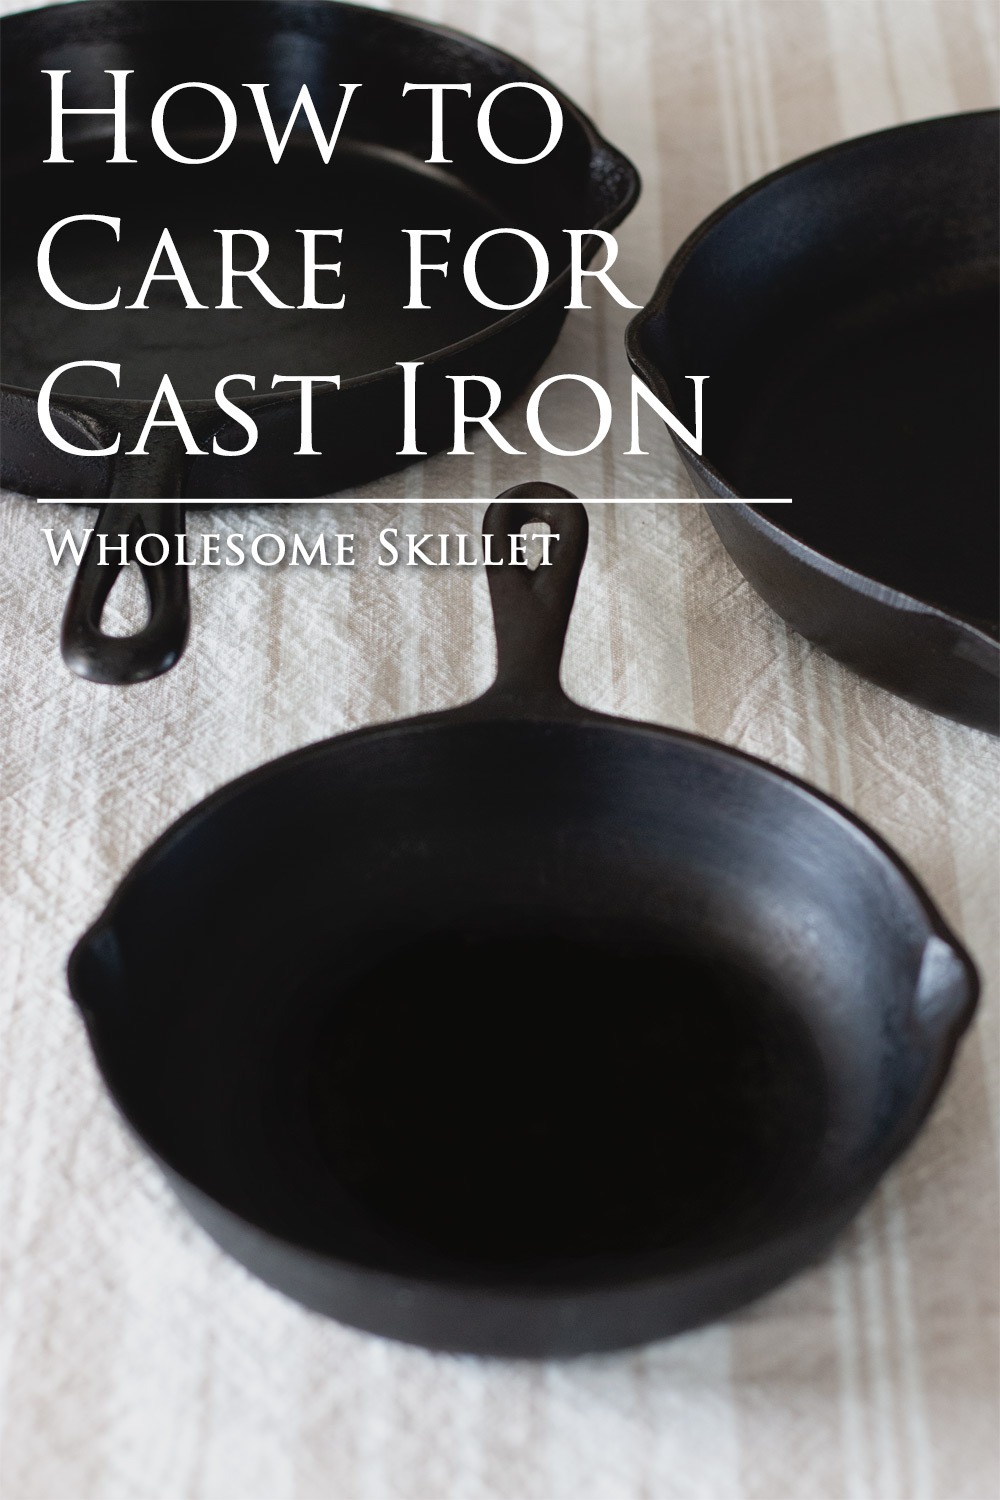 All About Cast Iron  - How to Care for it and Tips for Using it